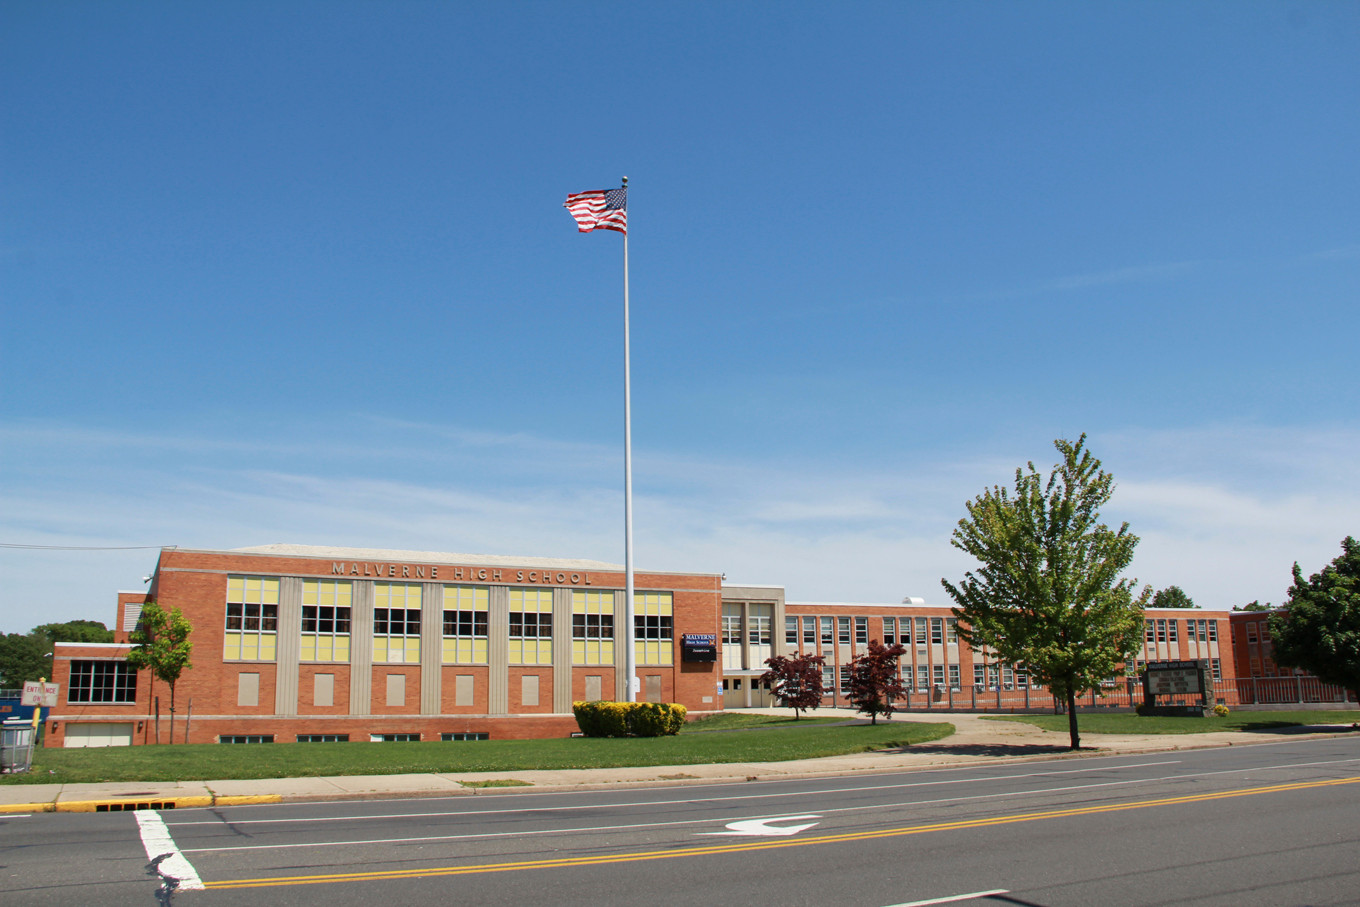 Malverne High School is the centerpiece of the school system.